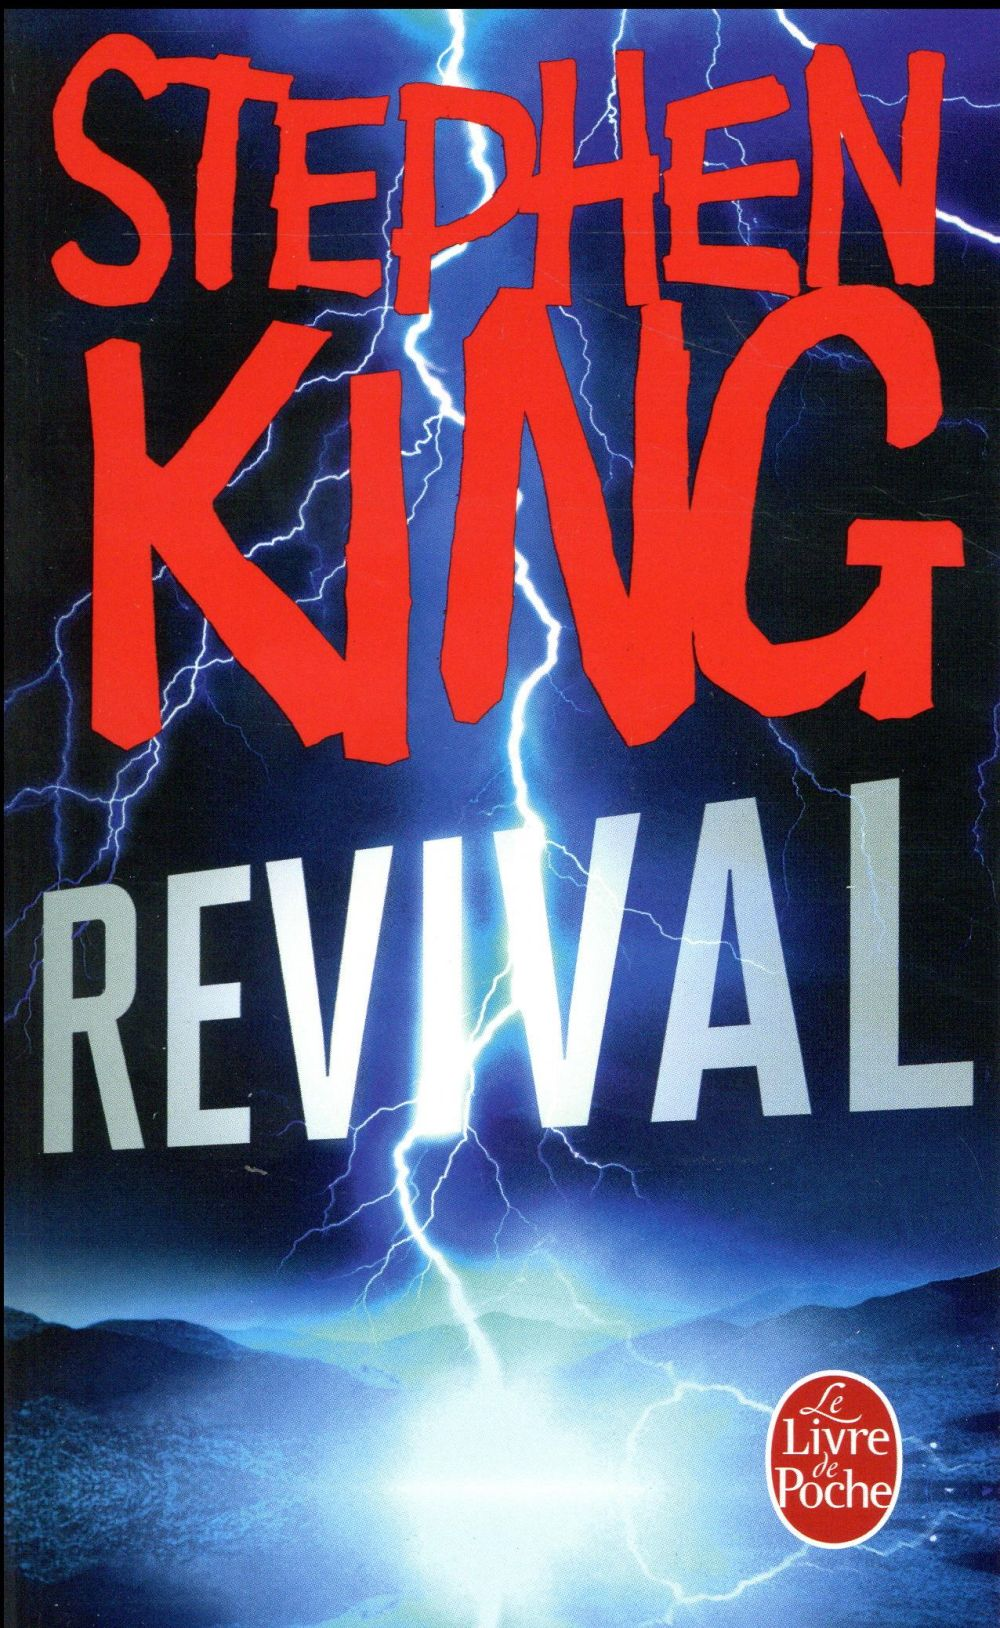 REVIVAL King Stephen Le Livre de poche